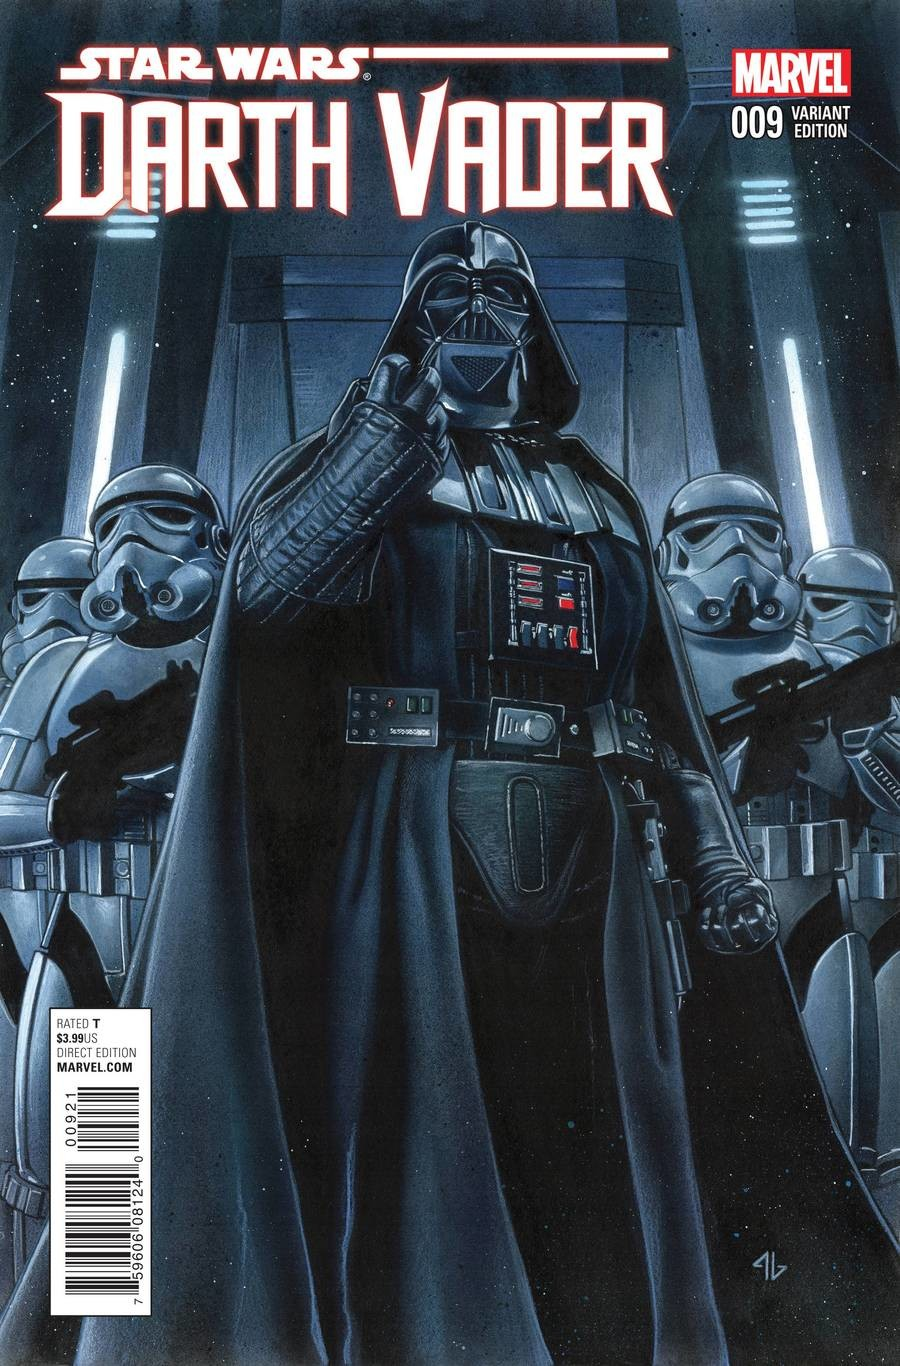 Star Wars Darth Vader issue 9. Issue number 9 of the canon Darth Vader comic series Click the lists mention history and these three links for every previous Dar